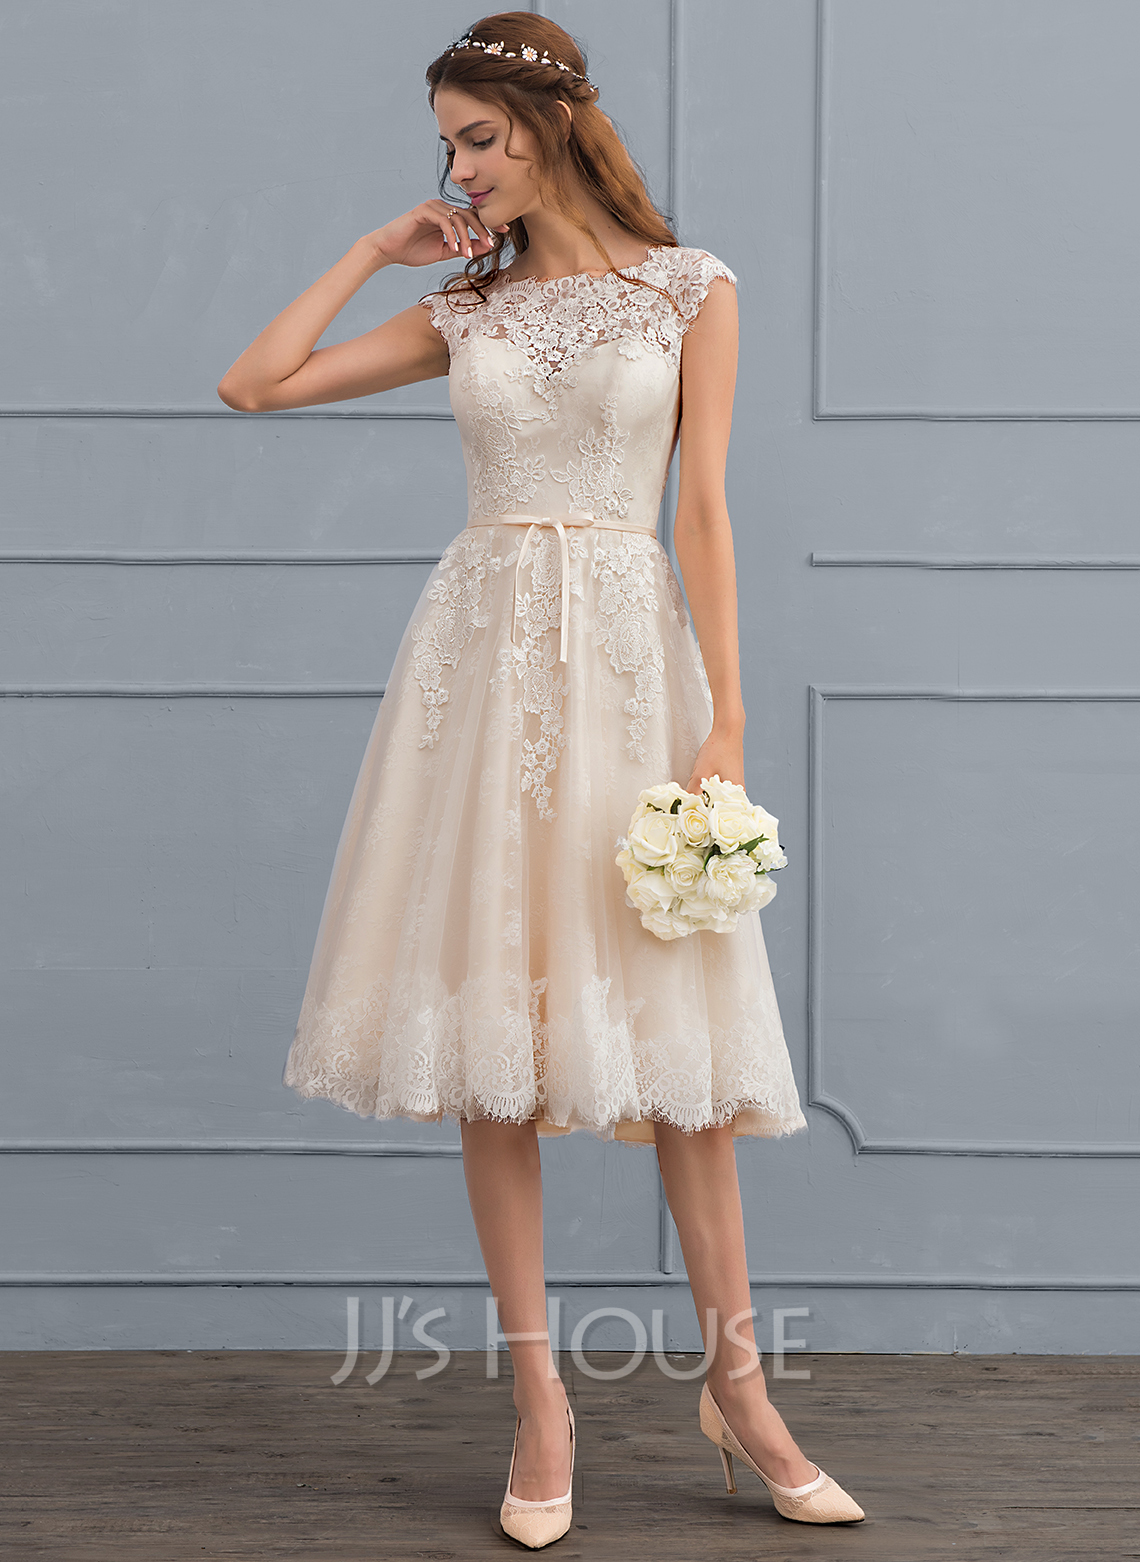 A Line Princess Scoop Neck Knee Length Tulle Lace Wedding Dress With Bow